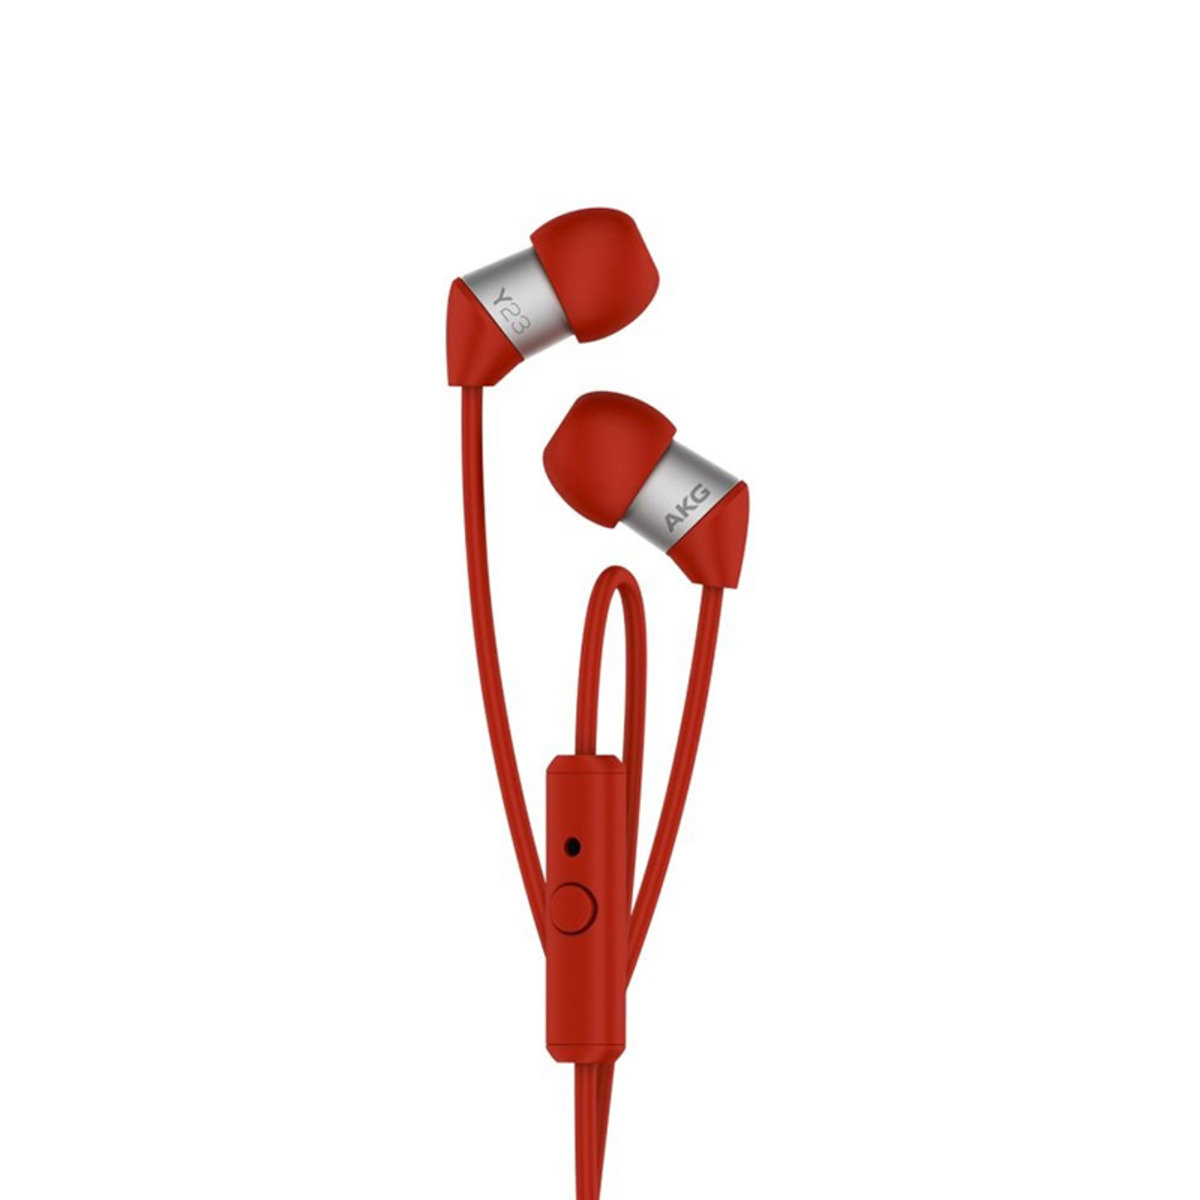 AKG Y23U In ear Headphone with in-line universal remote / mic for Android Red